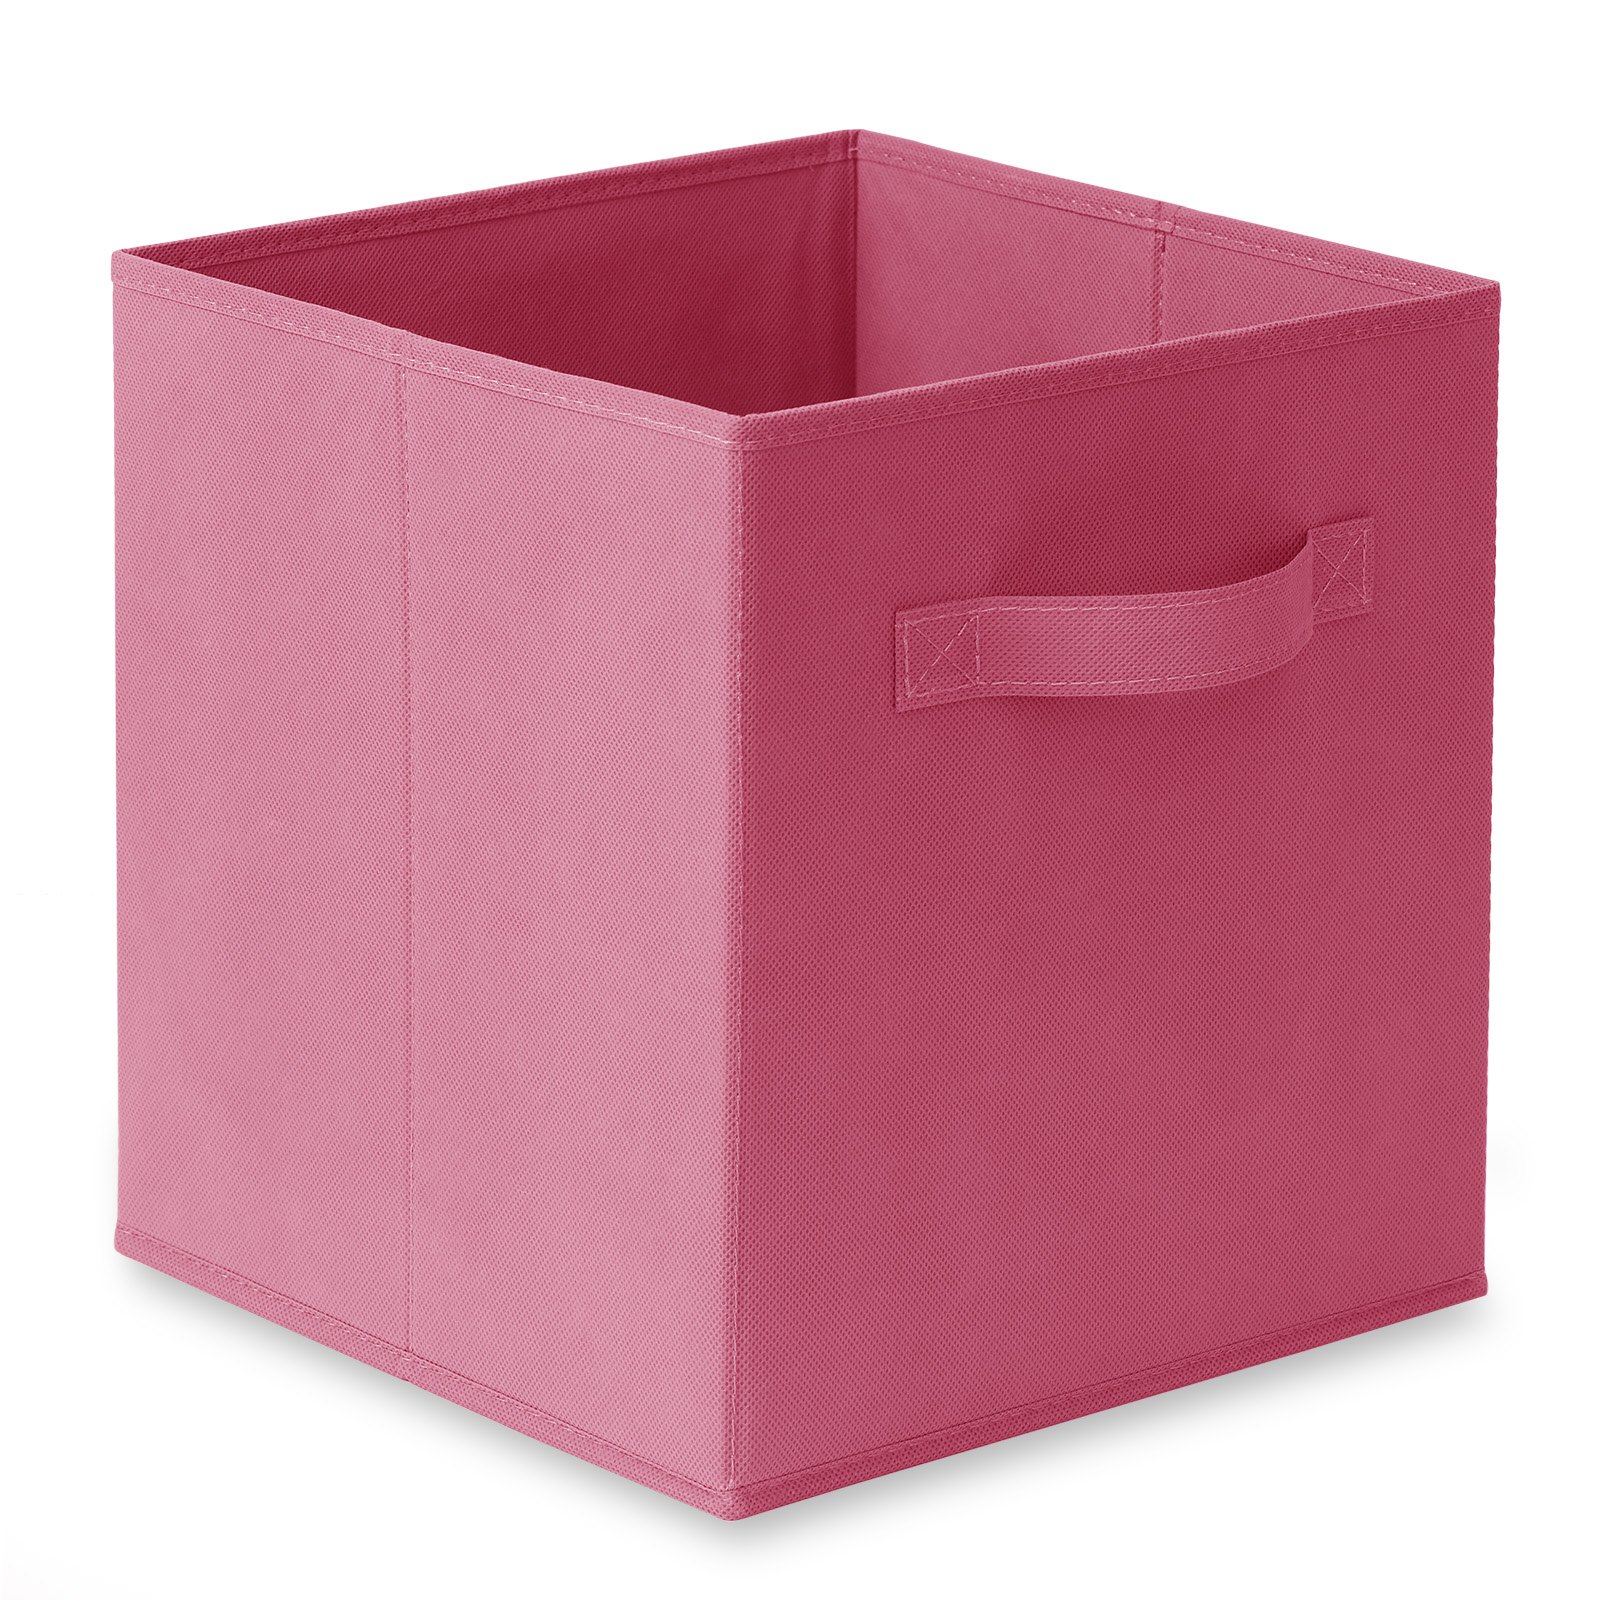 6-Collapsible-Foldable-Cloth-Fabric-Cubby-Cube-Storage-Bins-Baskets-for-Shelves thumbnail 28